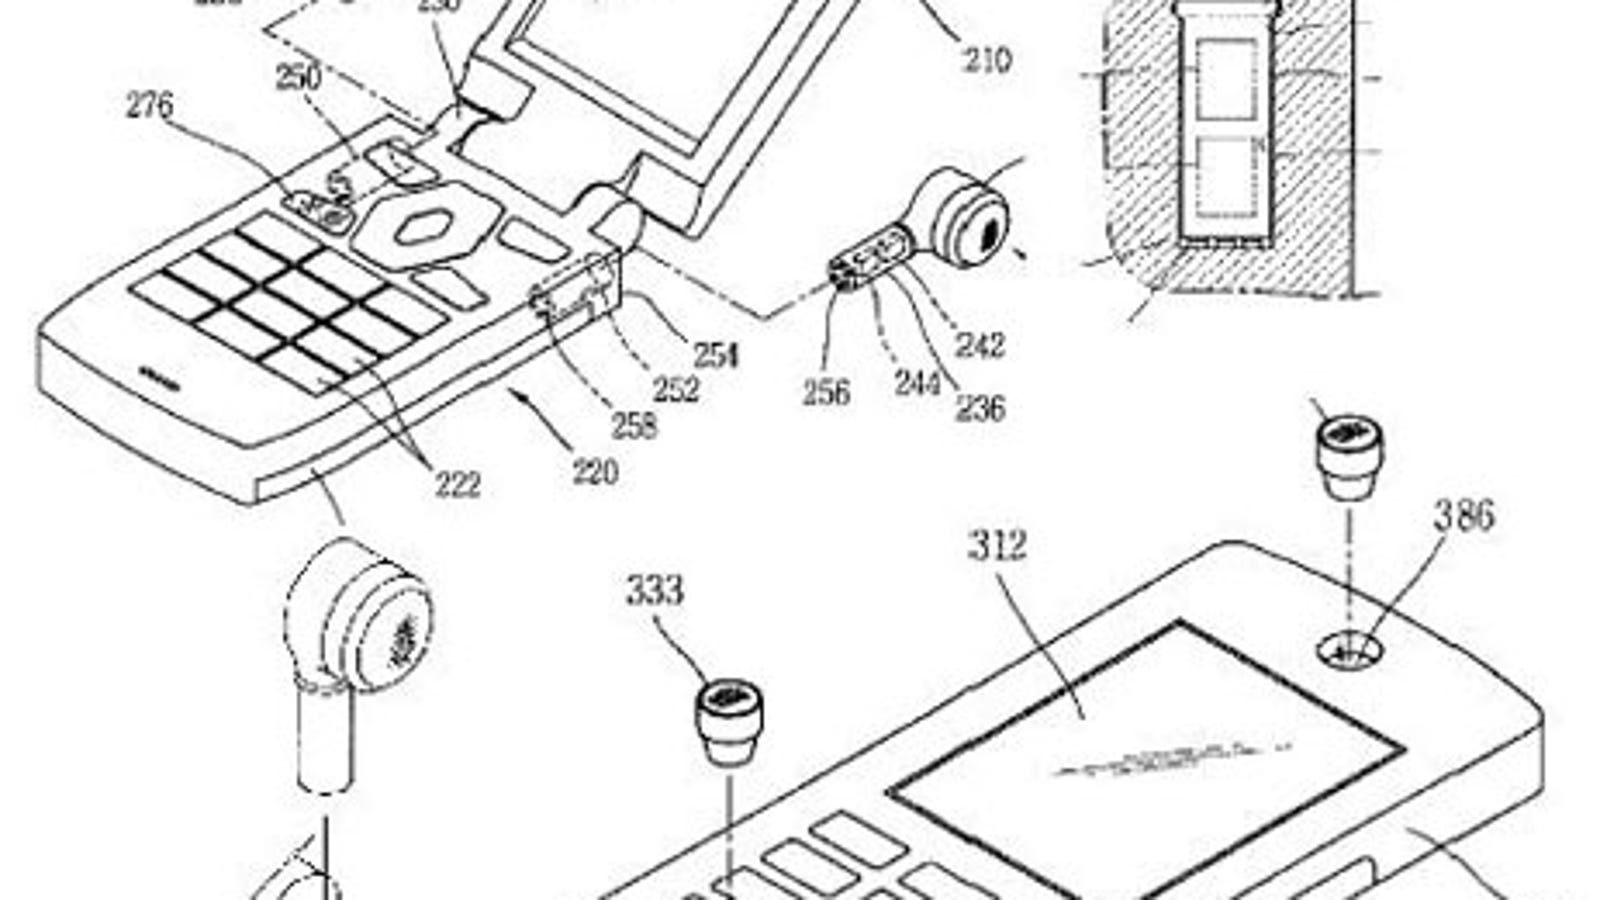 jvc blue earbuds riptidz - LG Files Patent for Way-Cool Detachable Wireless Earbuds